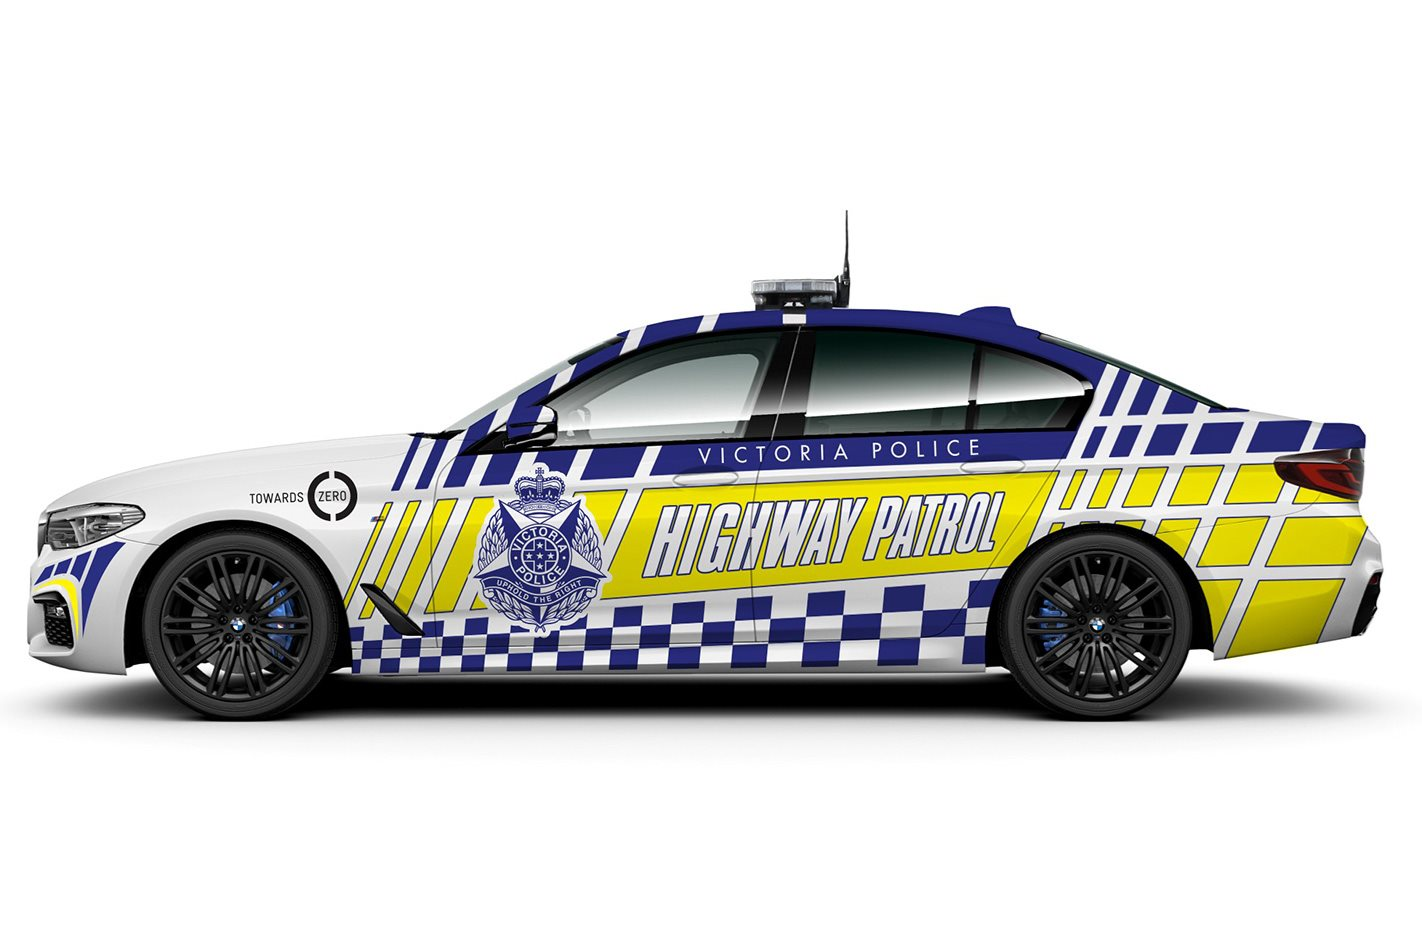 Victoria Police BMW 5 Series side